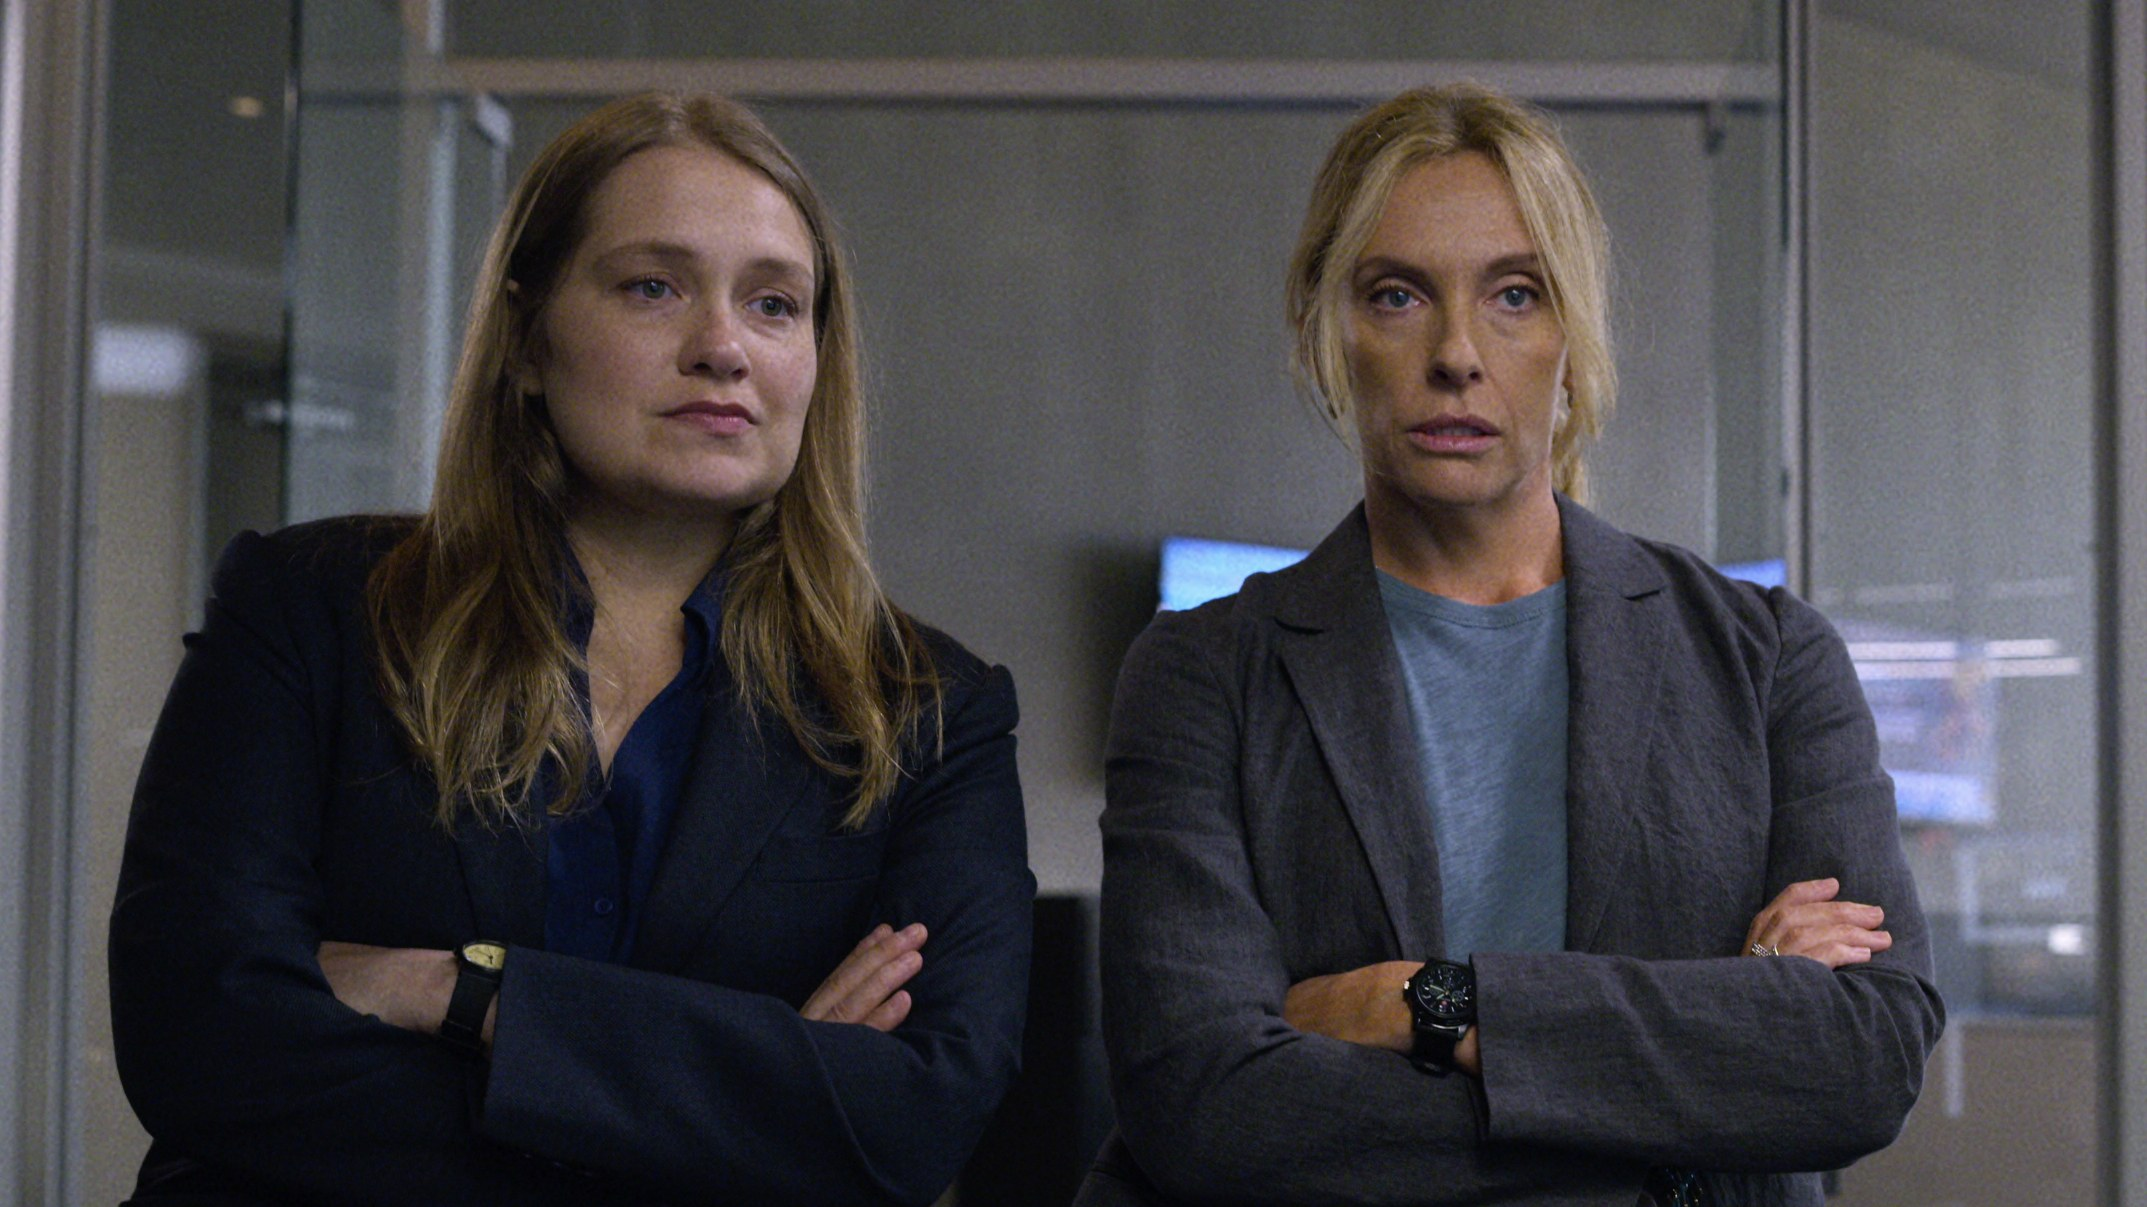 Merritt Wever and Toni Collette sand with their arms crossed observing something in the Netflix show Unbelievable